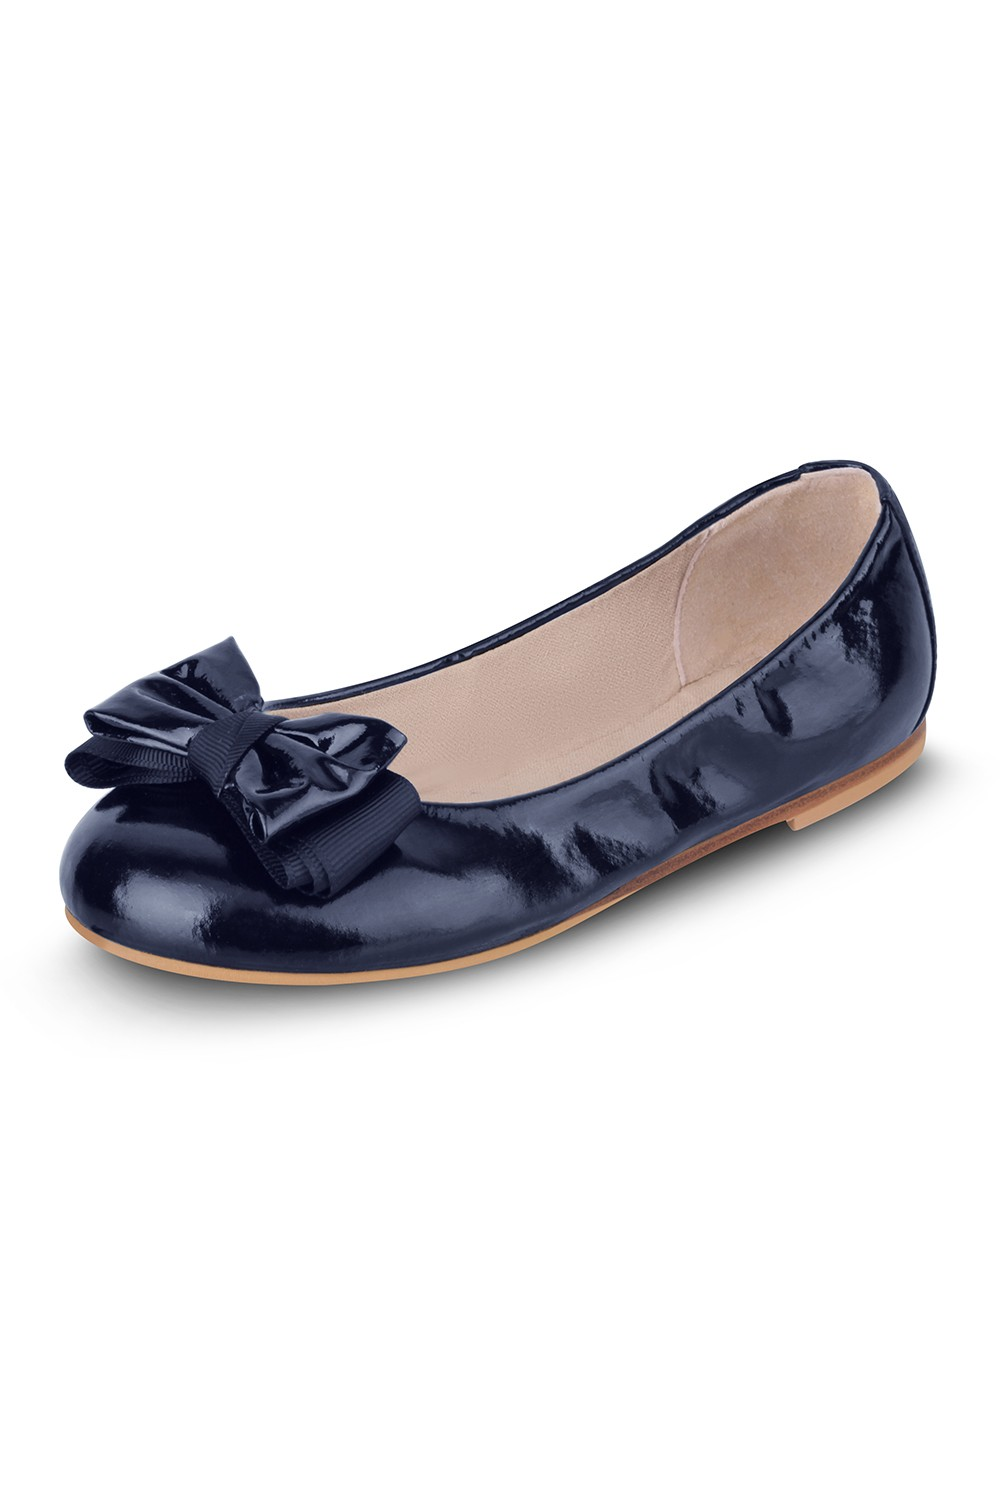 Girls Ballet Flats Girls Fashion Shoes